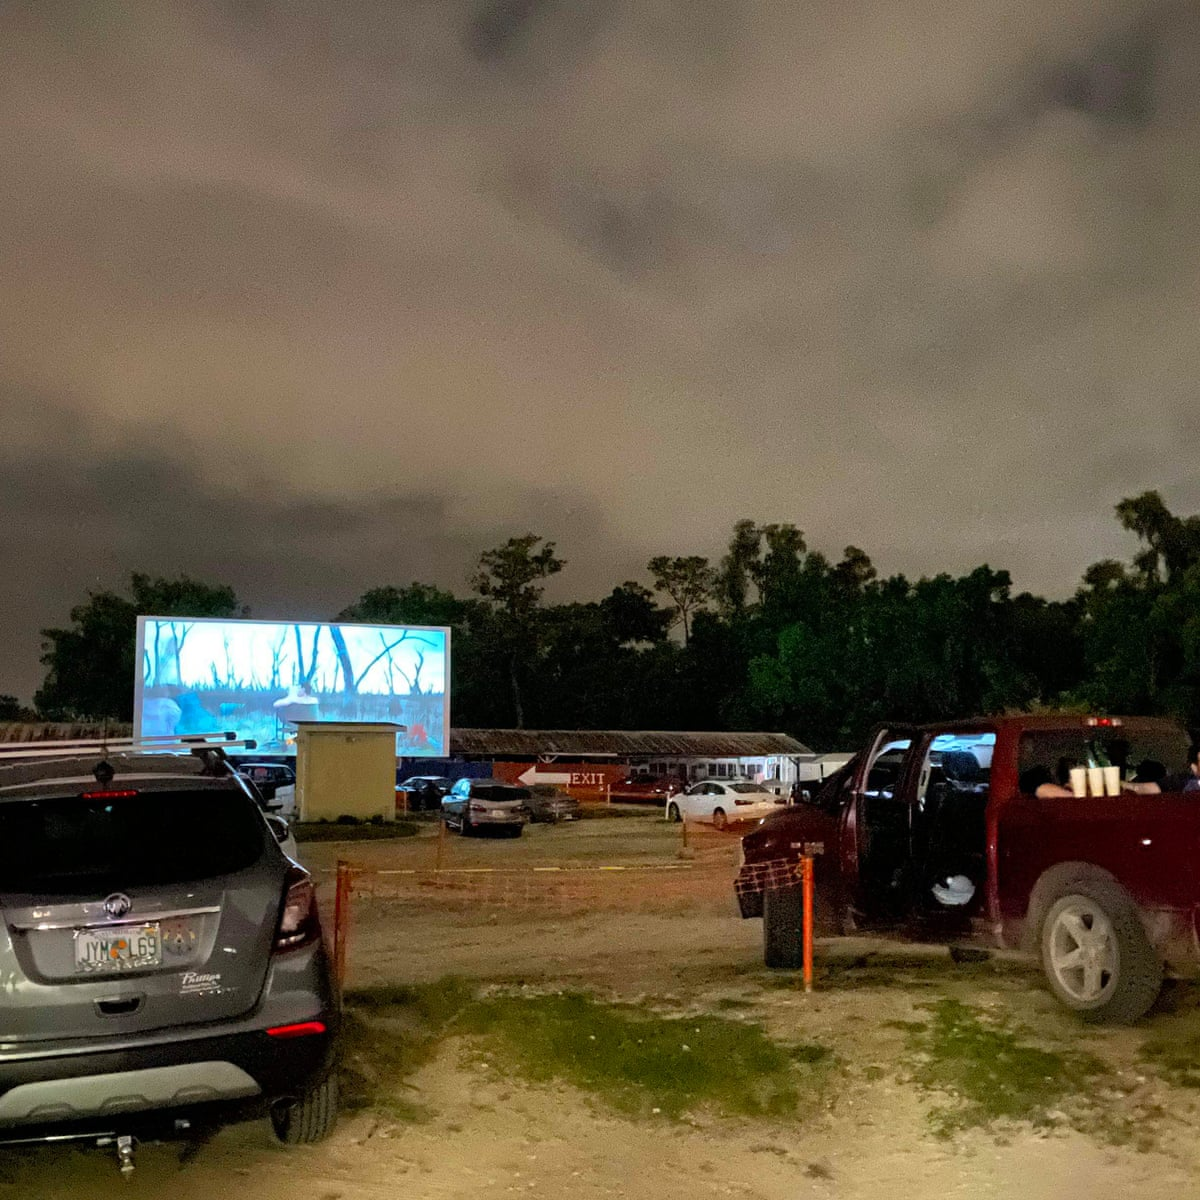 Back To The Future Are Drive In Theaters The Future Of Safe Cinema Trips Film The Guardian